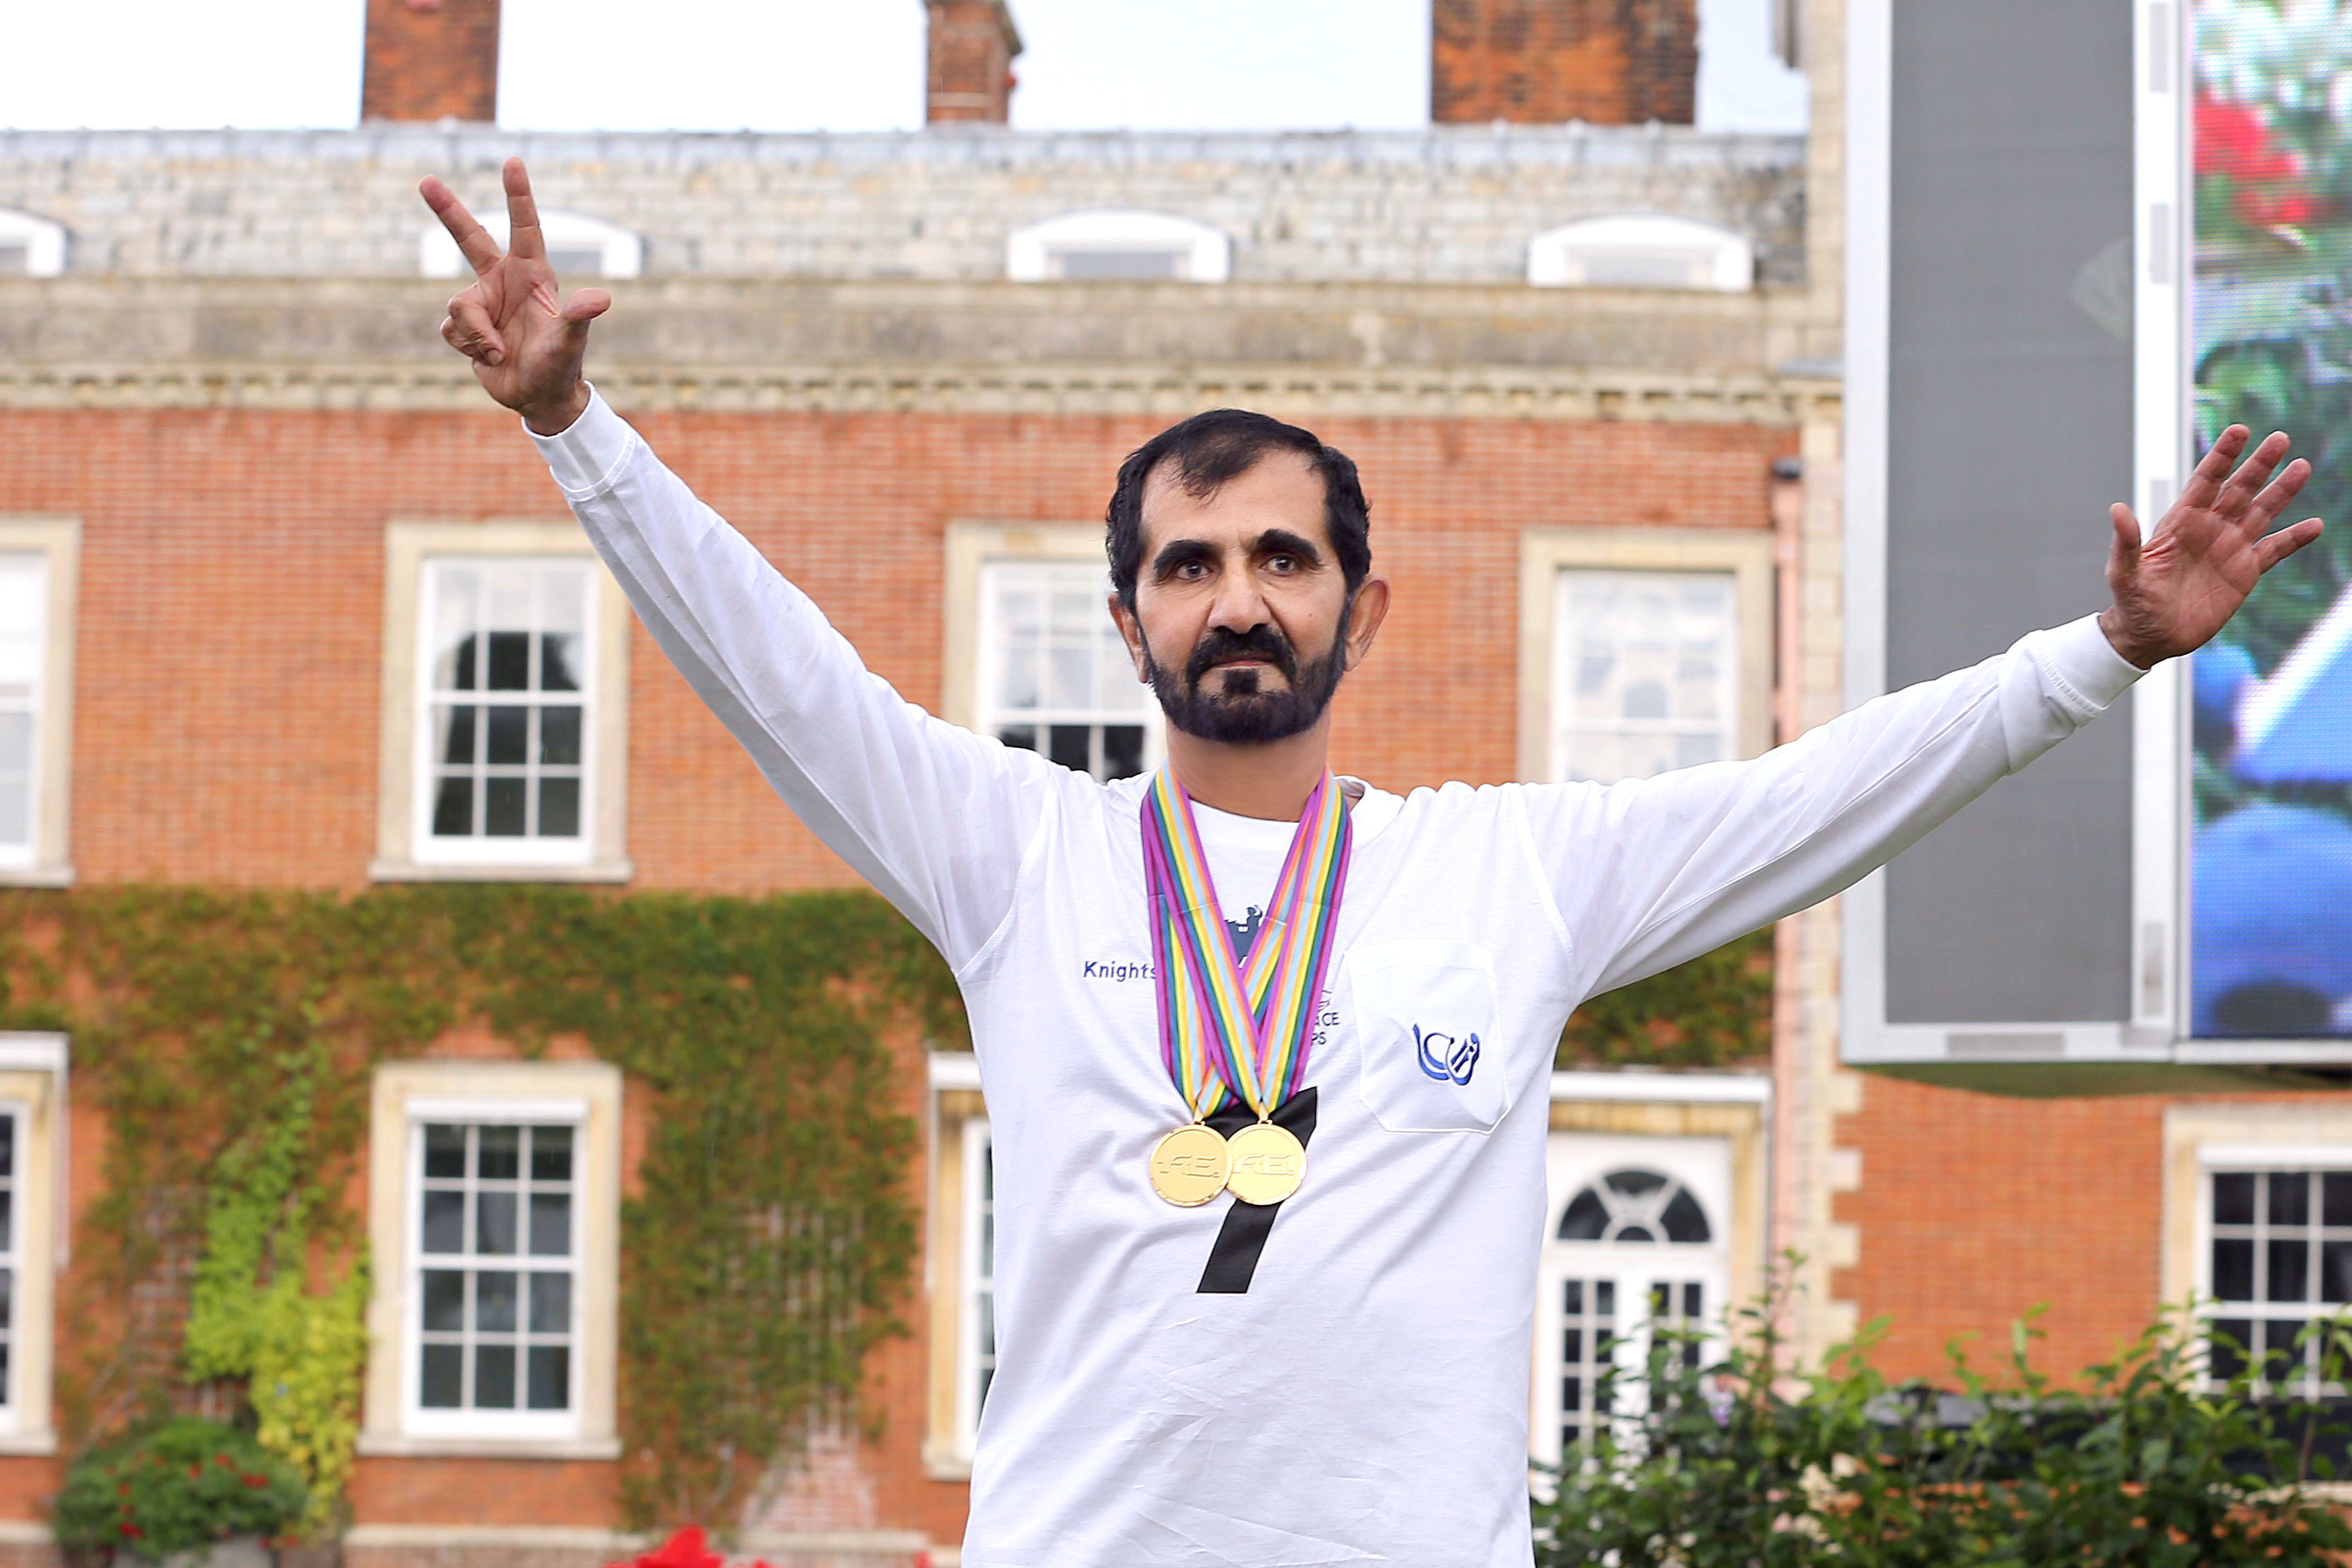 His Highness Sheikh Mohammed bin Rashid Al Maktoum - Sheikh Mohammed's interview with Al Khaleej daily after his historic win in the UK